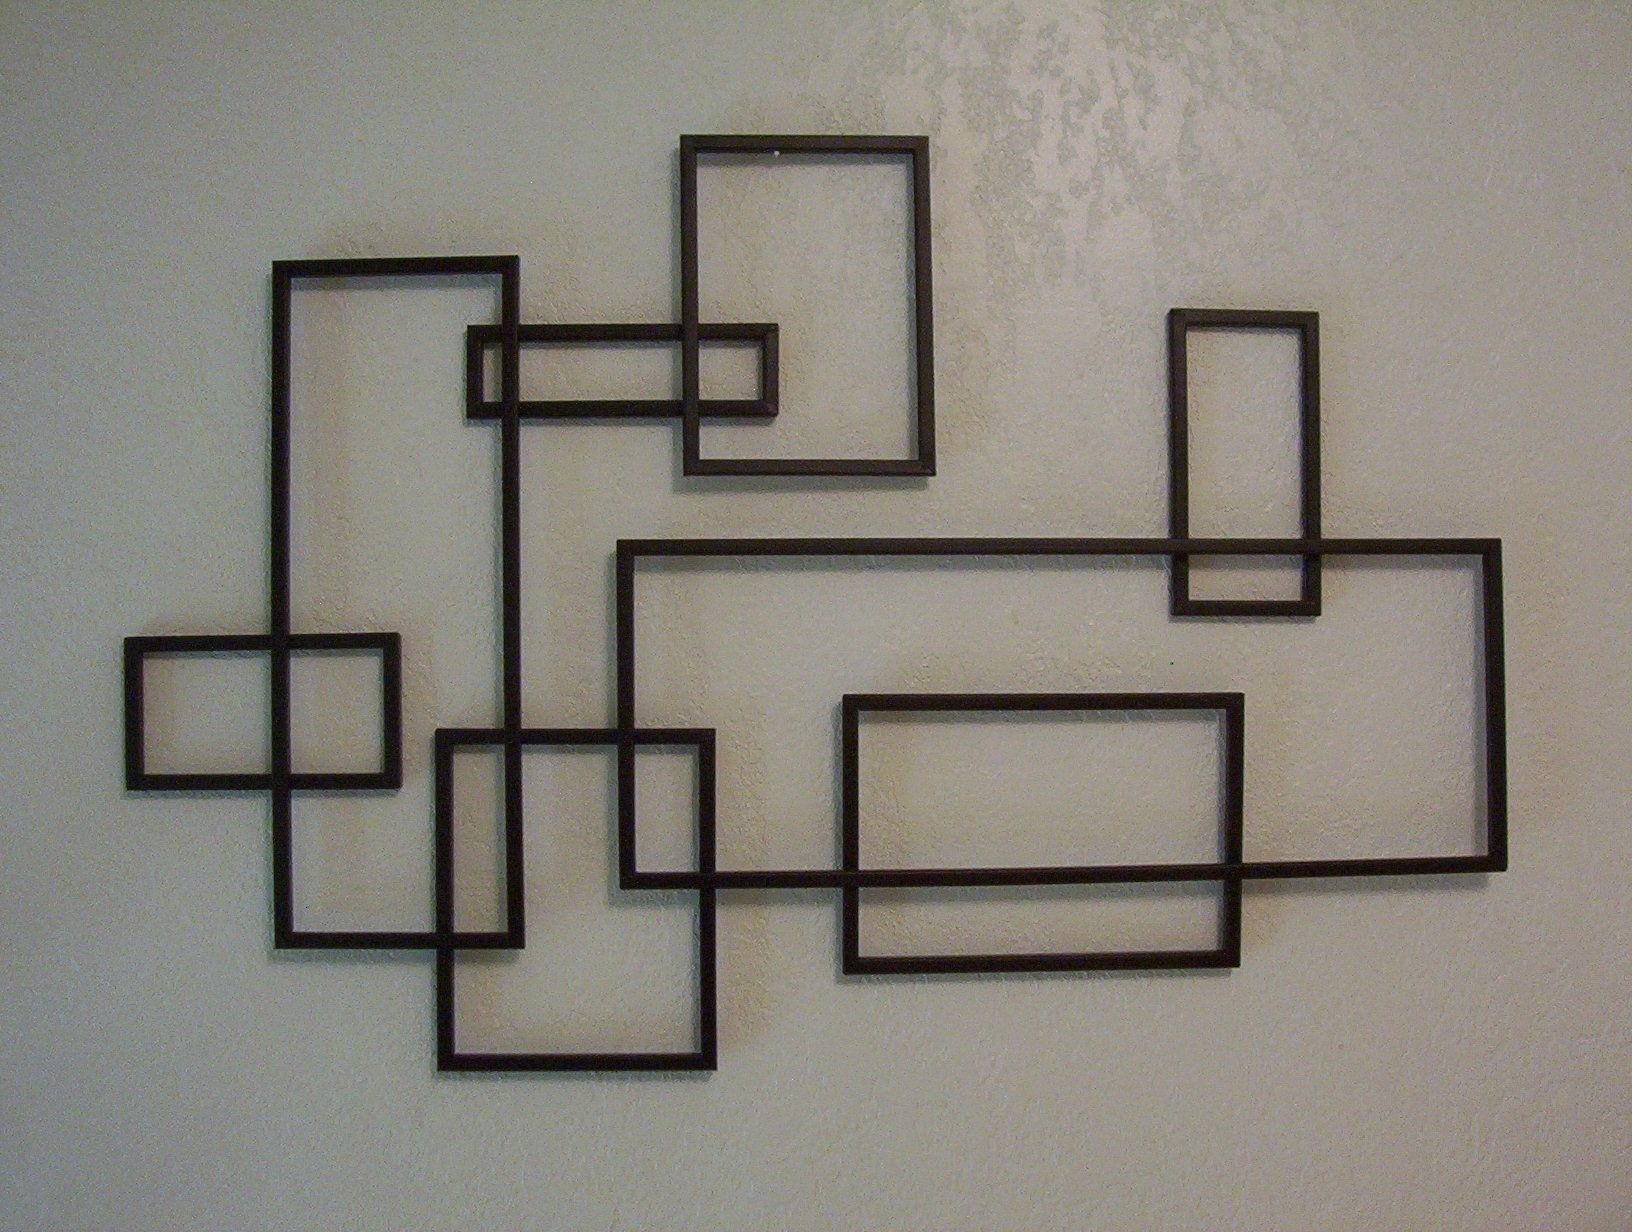 Mid Century Modern ~ De Stijl Style Geometric Metal Wall Sculpture Throughout 2018 Abstract Geometric Metal Wall Art (Gallery 2 of 20)